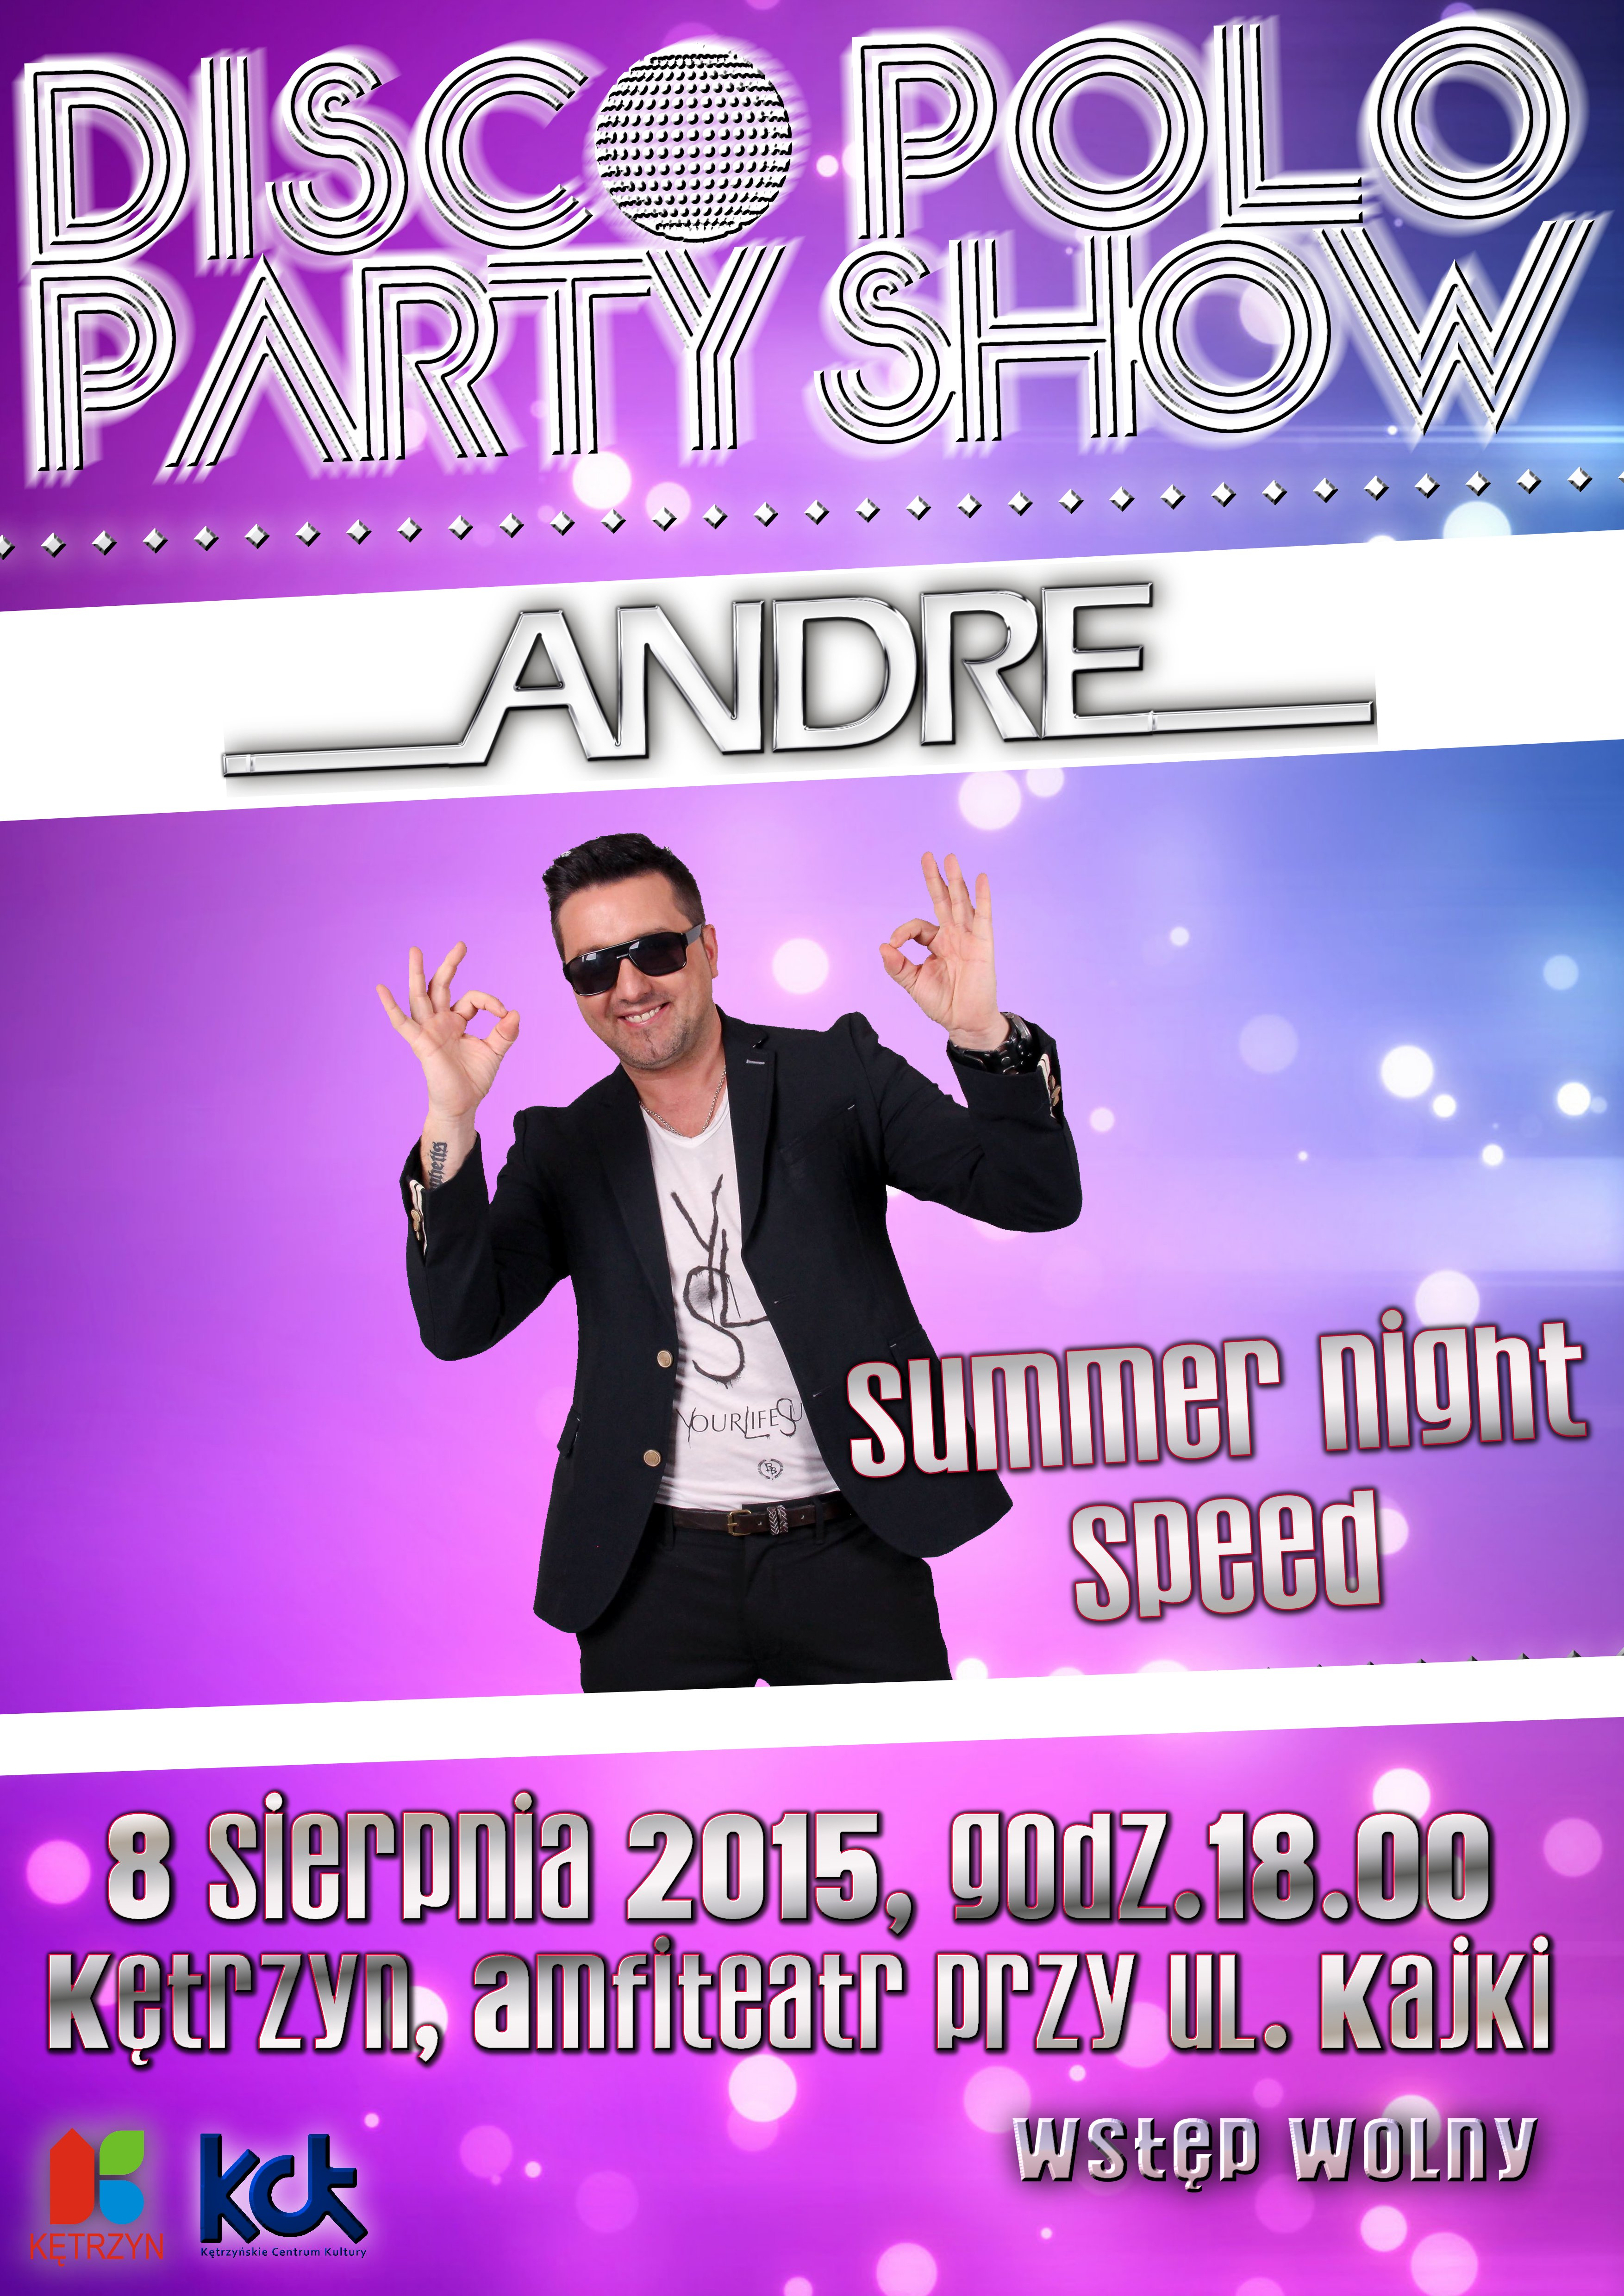 Disco Polo Party Show 2015